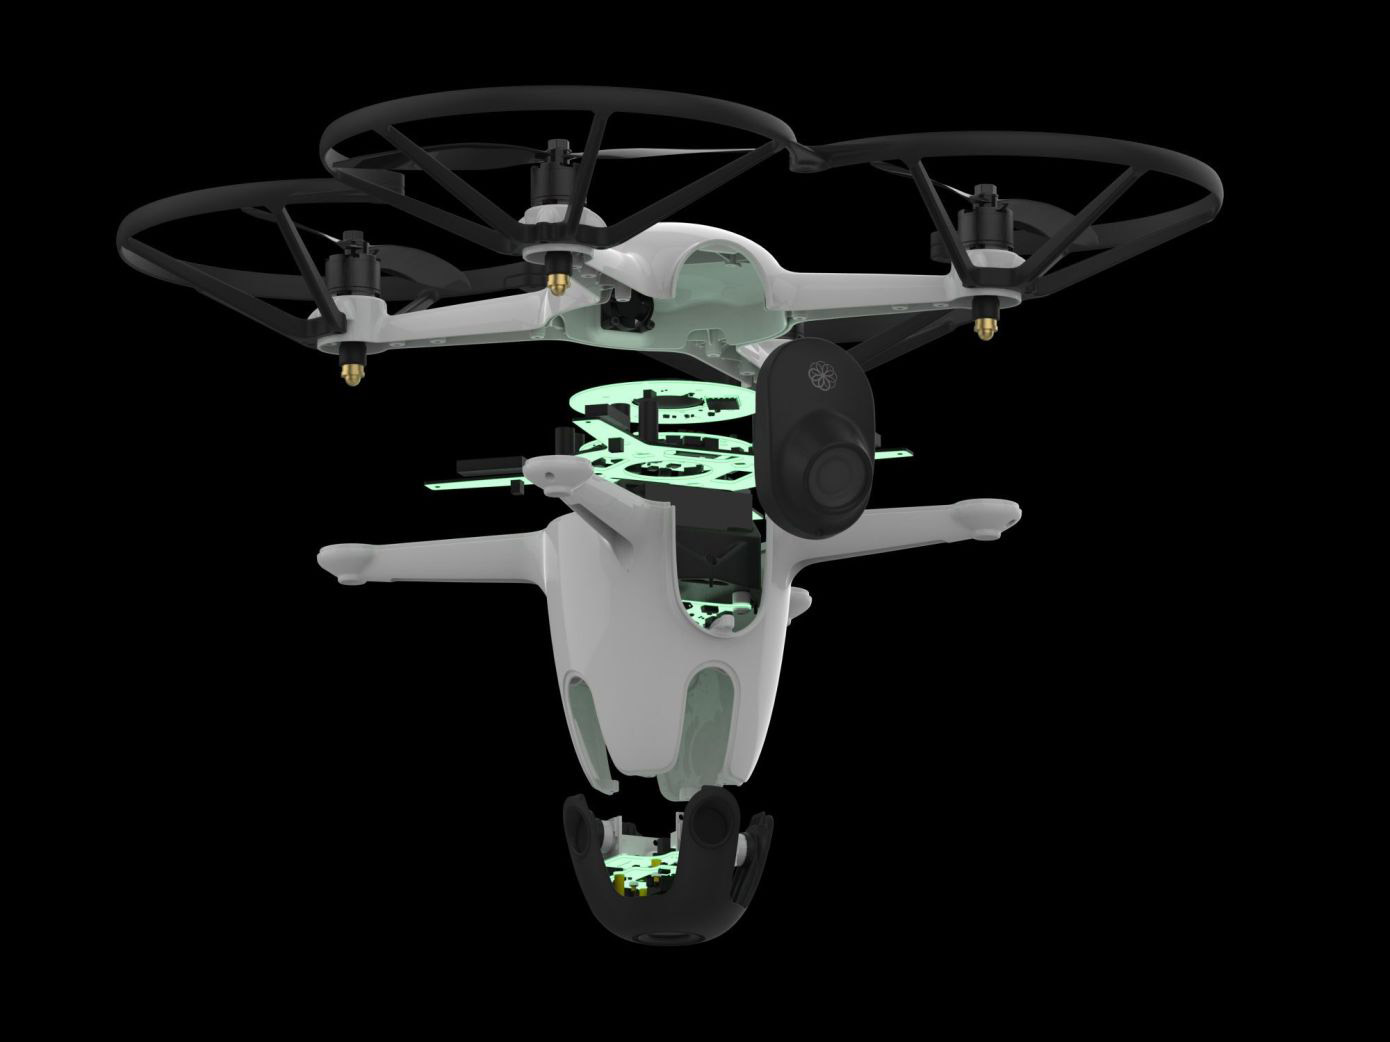 Sunflower Home Awareness System Security Drone